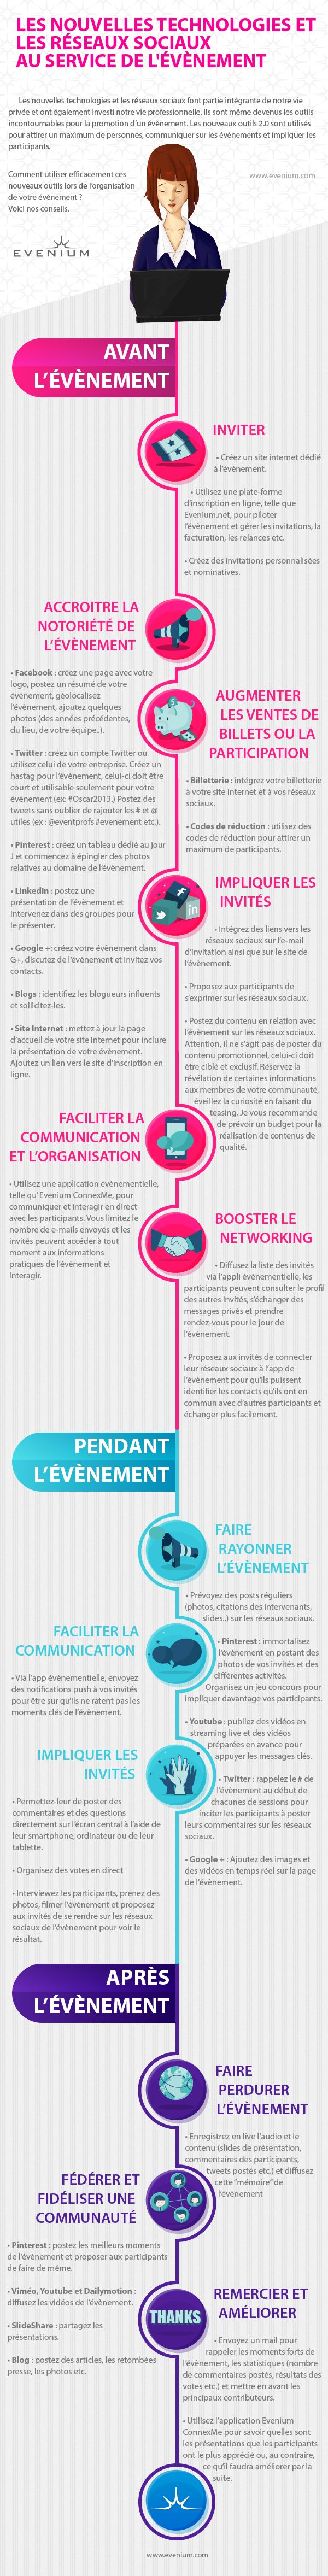 Community management et événementiel en infographie | Agence web 1min30, Inbound marketing et communication digitale 360°